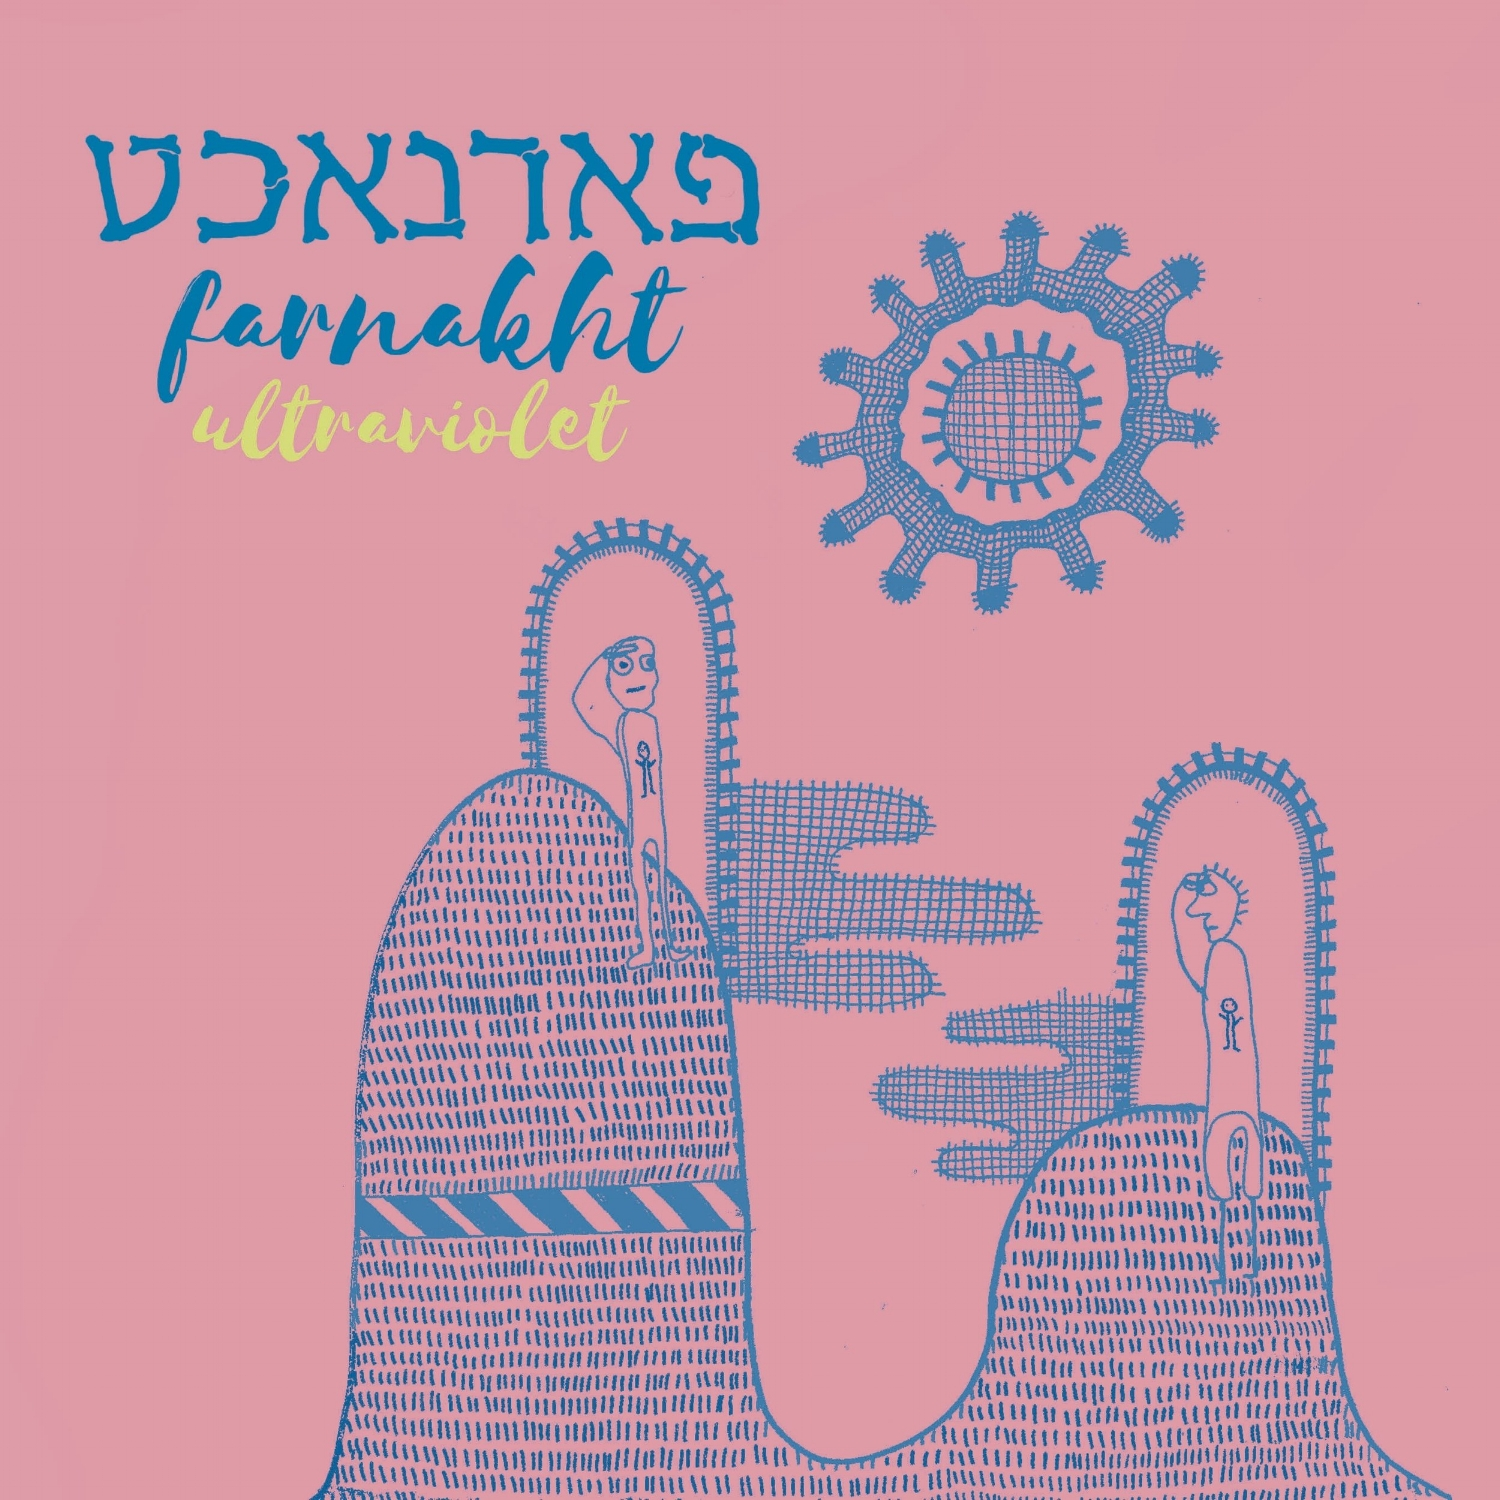 New album from Farnakht! - Find CDs, digital downloads, shirts and tote bags here